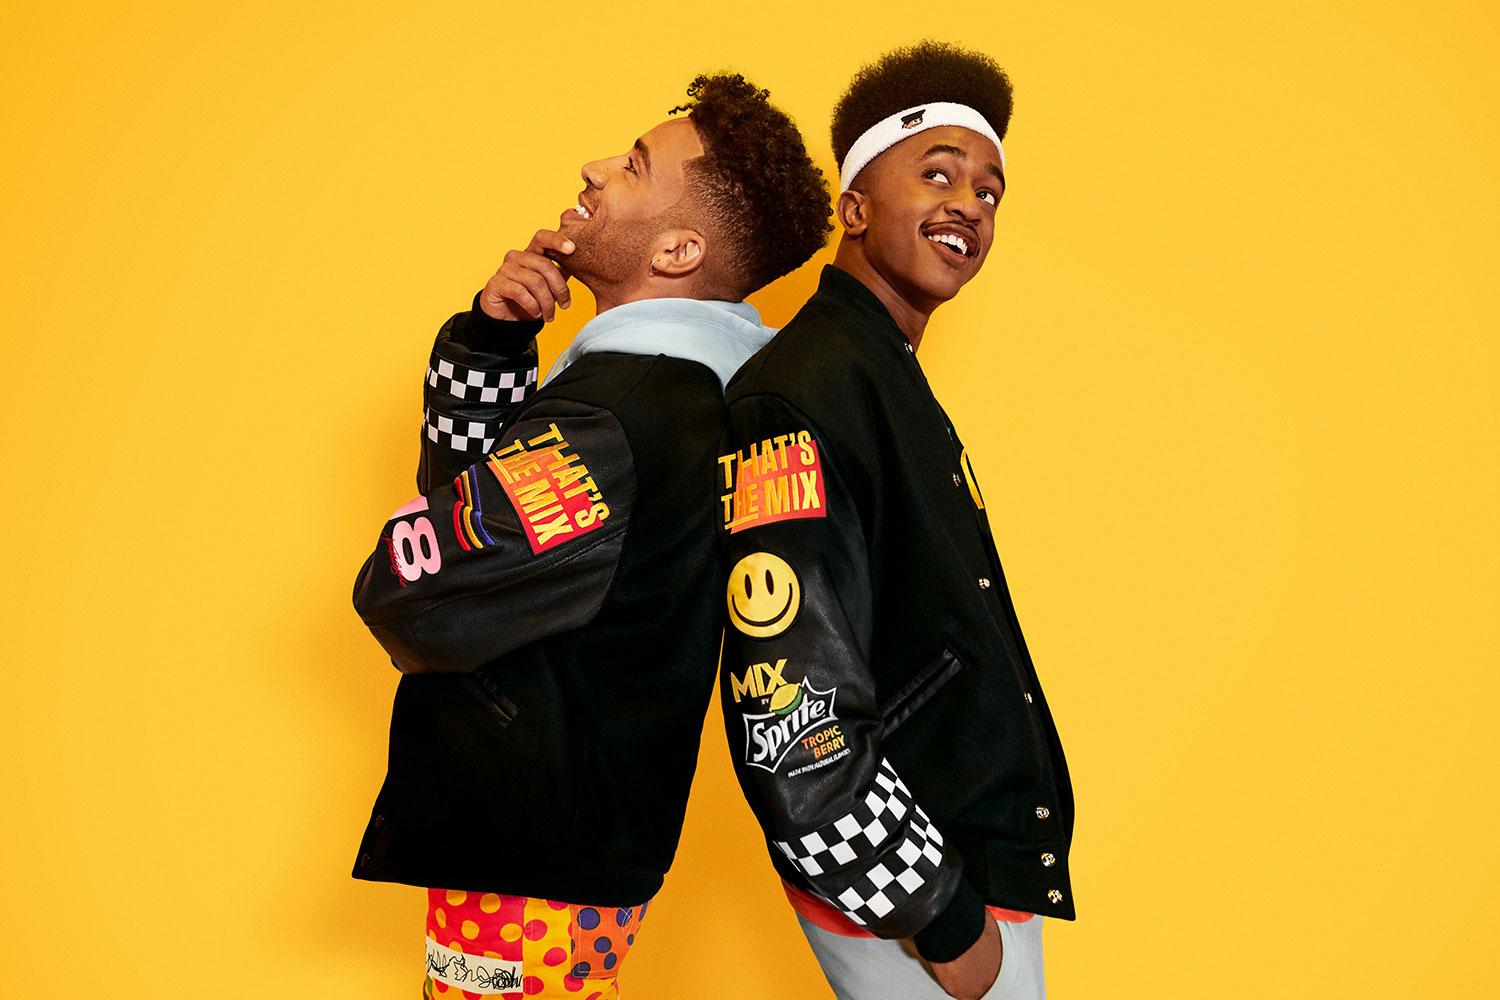 KYLE and Brick wearing That's the MIX letterman jackets